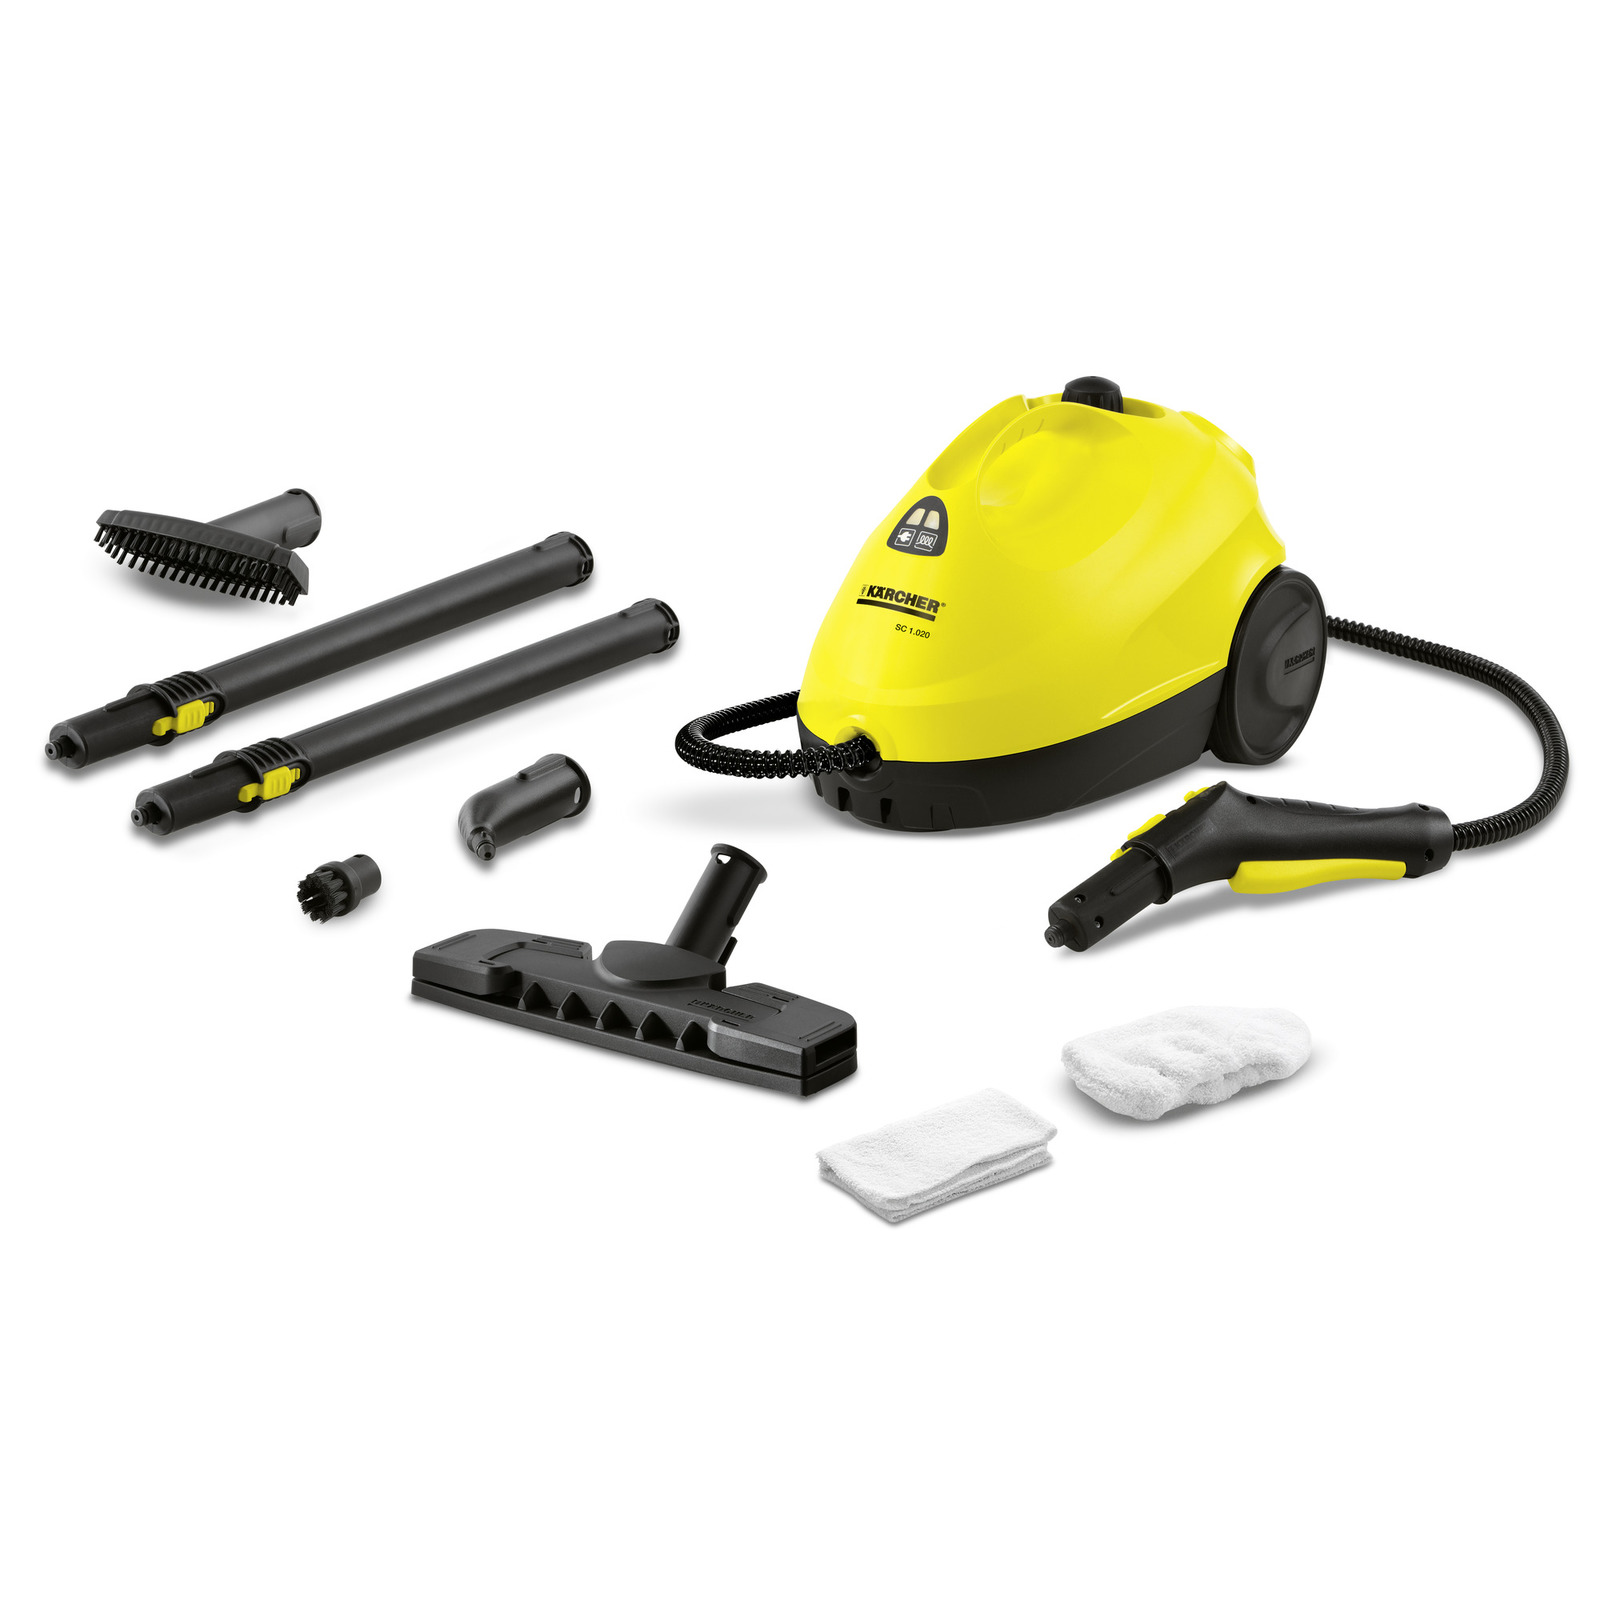 karcher sc 1.020 steam cleaner instructions